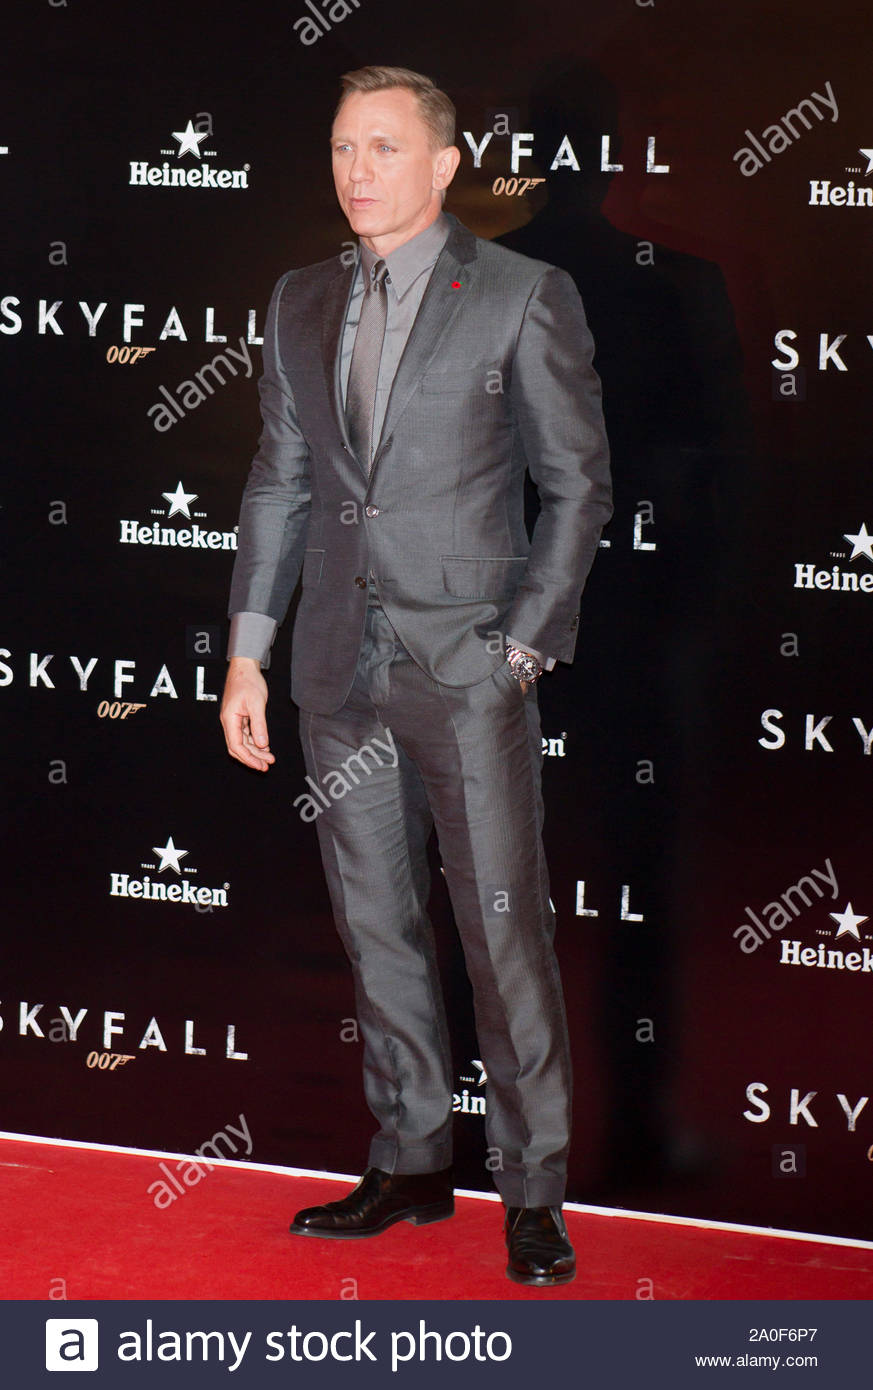 """Madrid, Spain - Actor Daniel Craig attends the """"Skyfall"""" premiere held at the Espanol Theater in Madrid, Spain. AKM-GSI October 29, 2012 Stock Photo"""